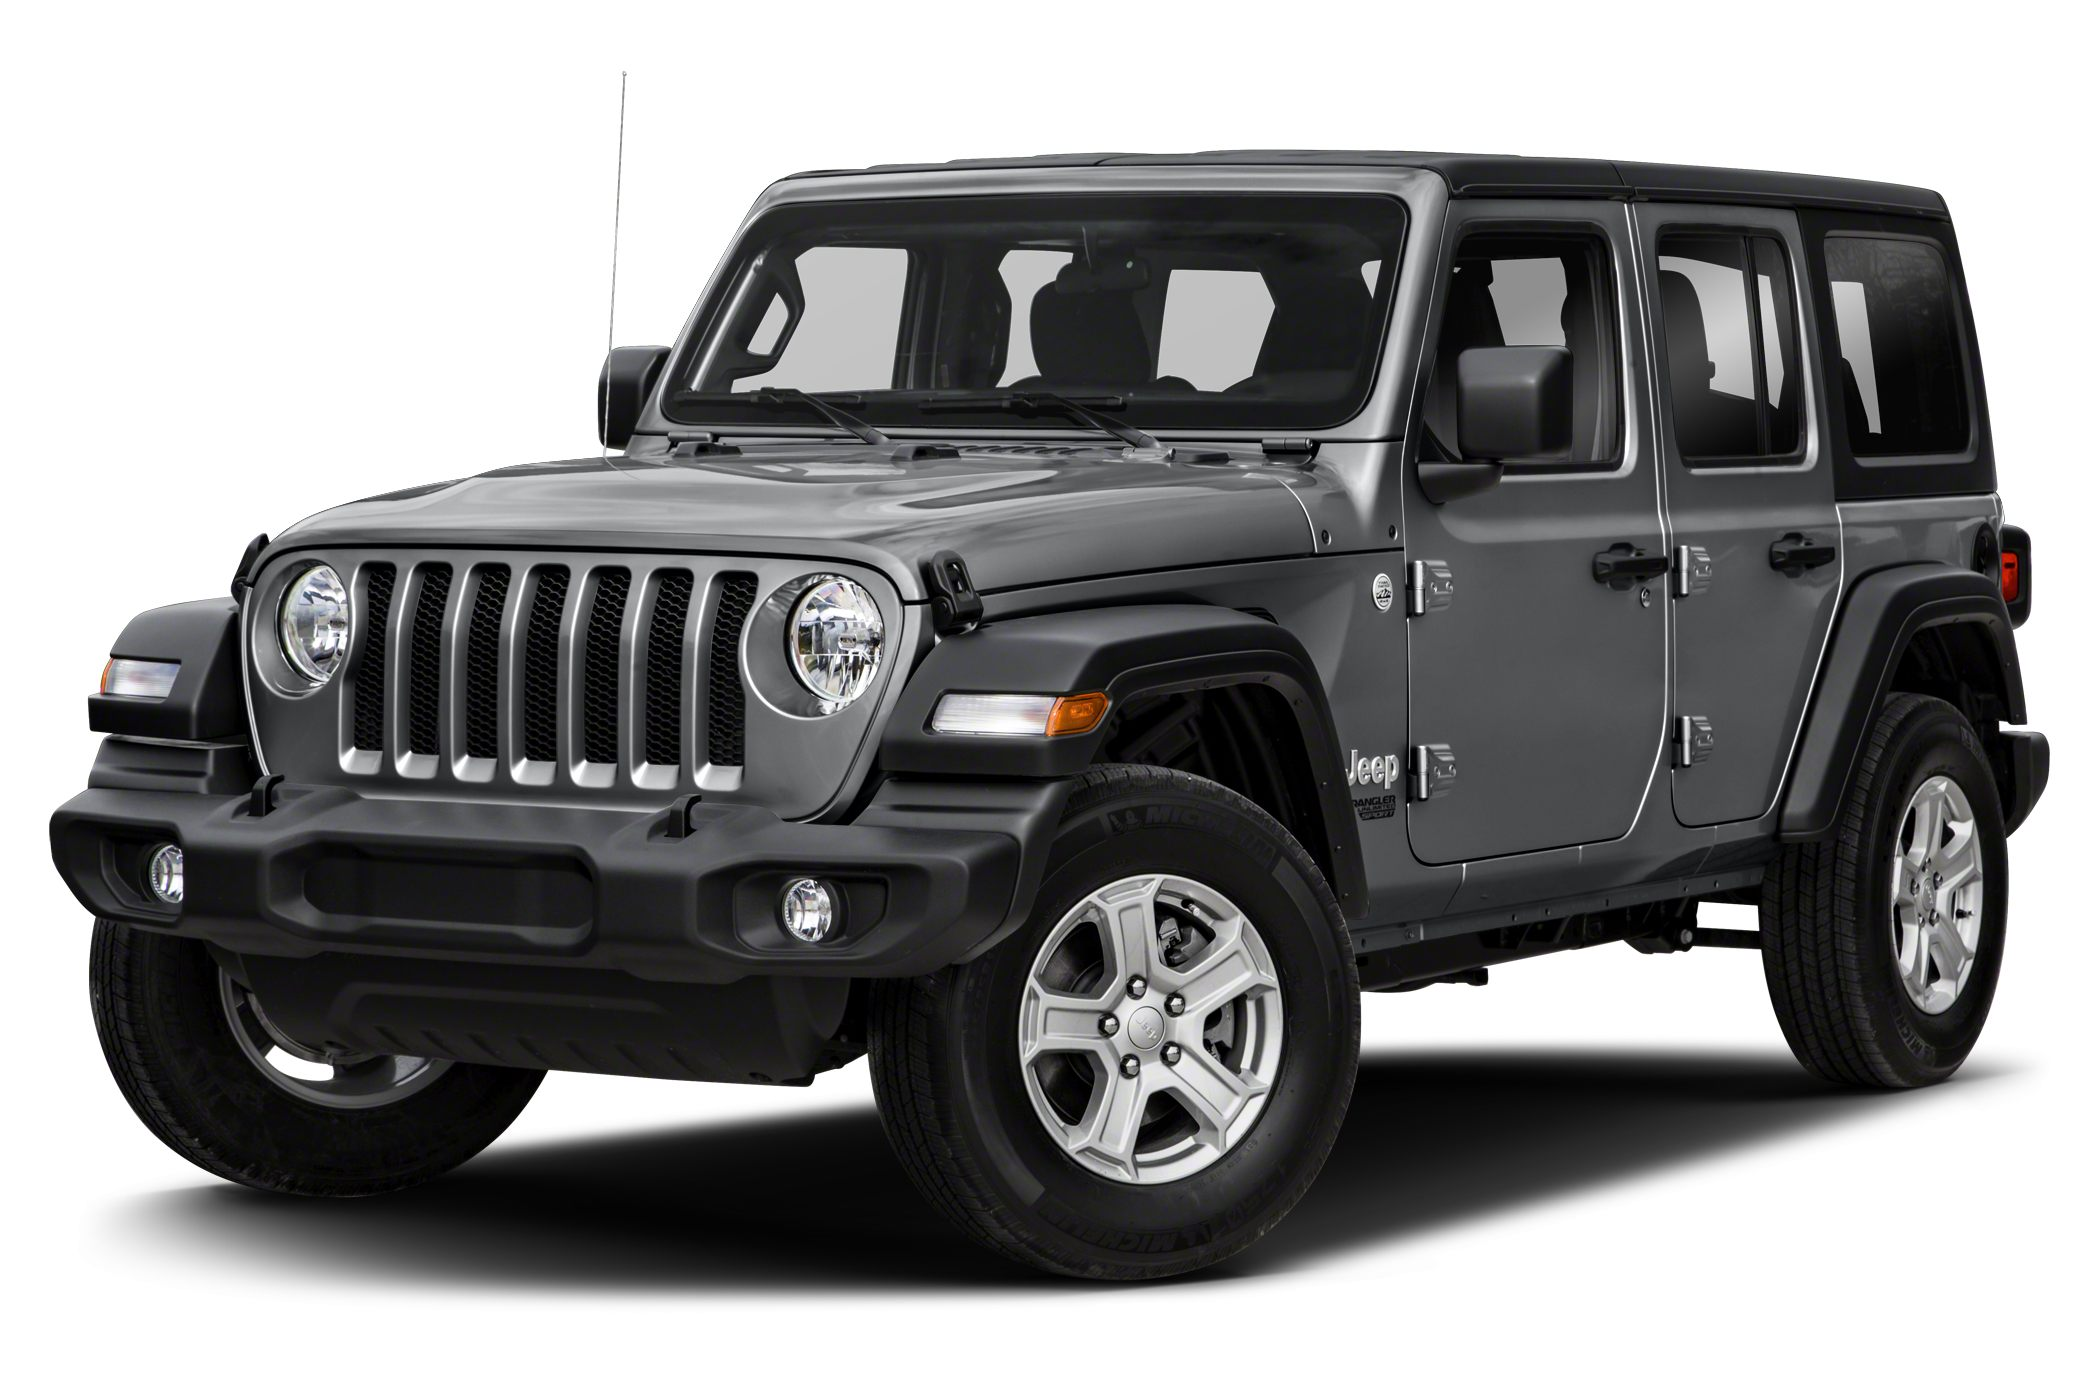 2020 Jeep Unlimited Wrangler